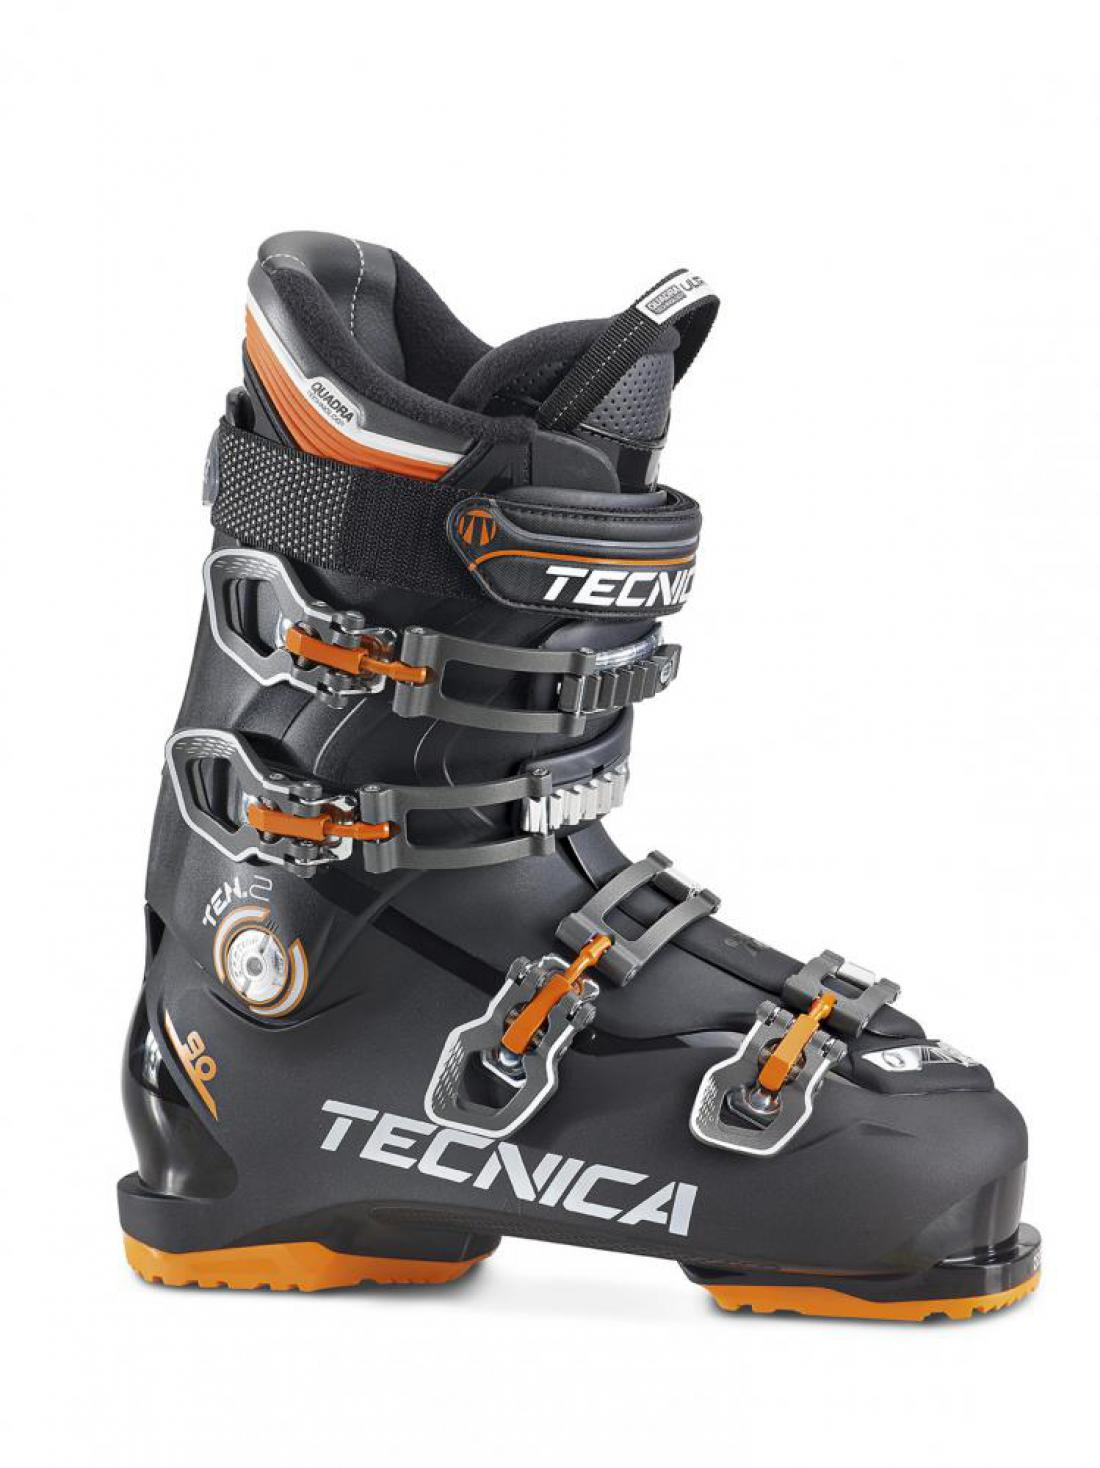 Tecnica TEN. 2 90 HV black 17/18